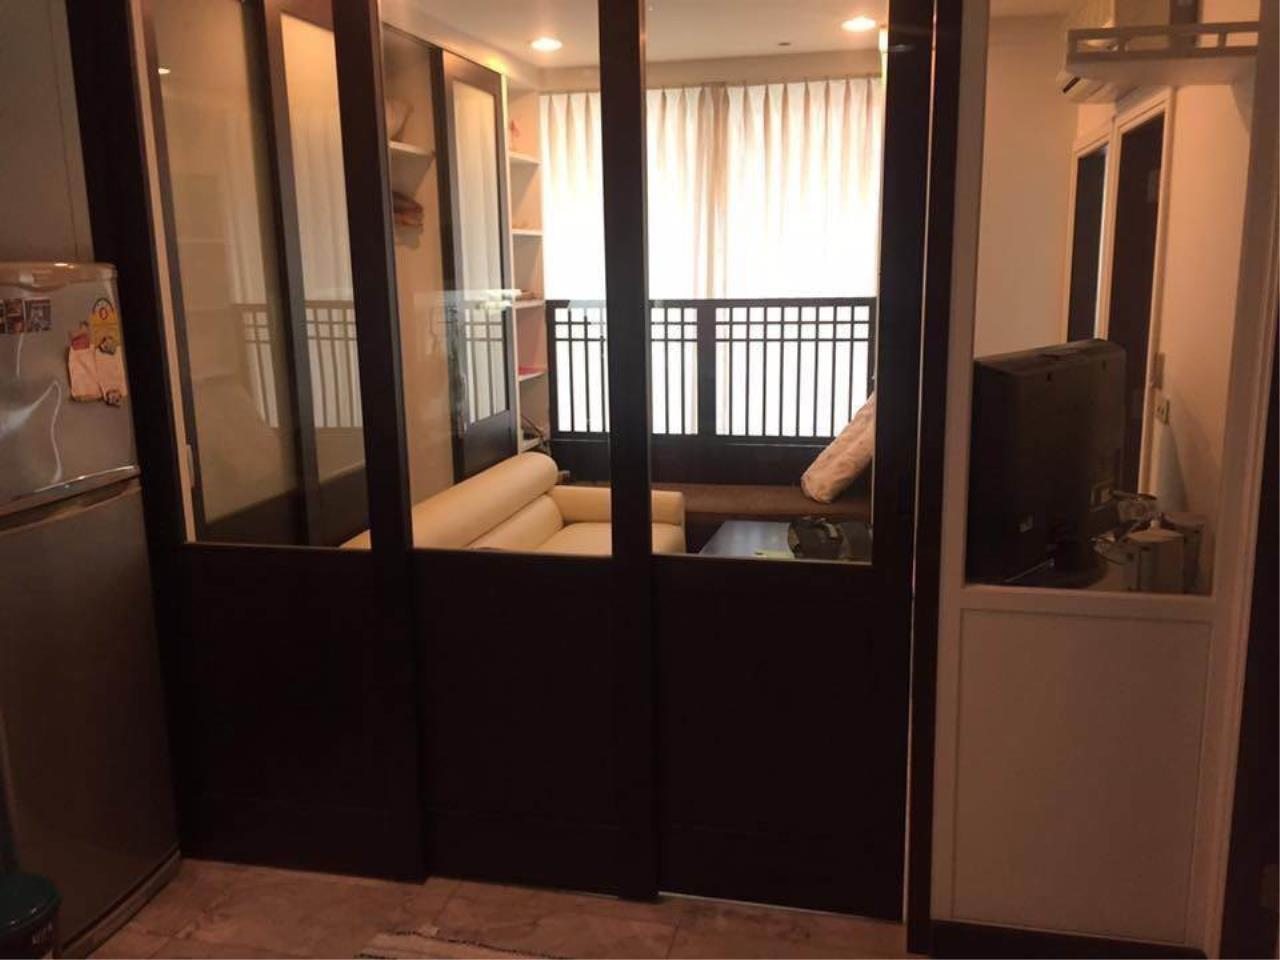 RE/MAX All Star Realty Agency's Sathorn House Condo for rent (BTS Sarasak) 3